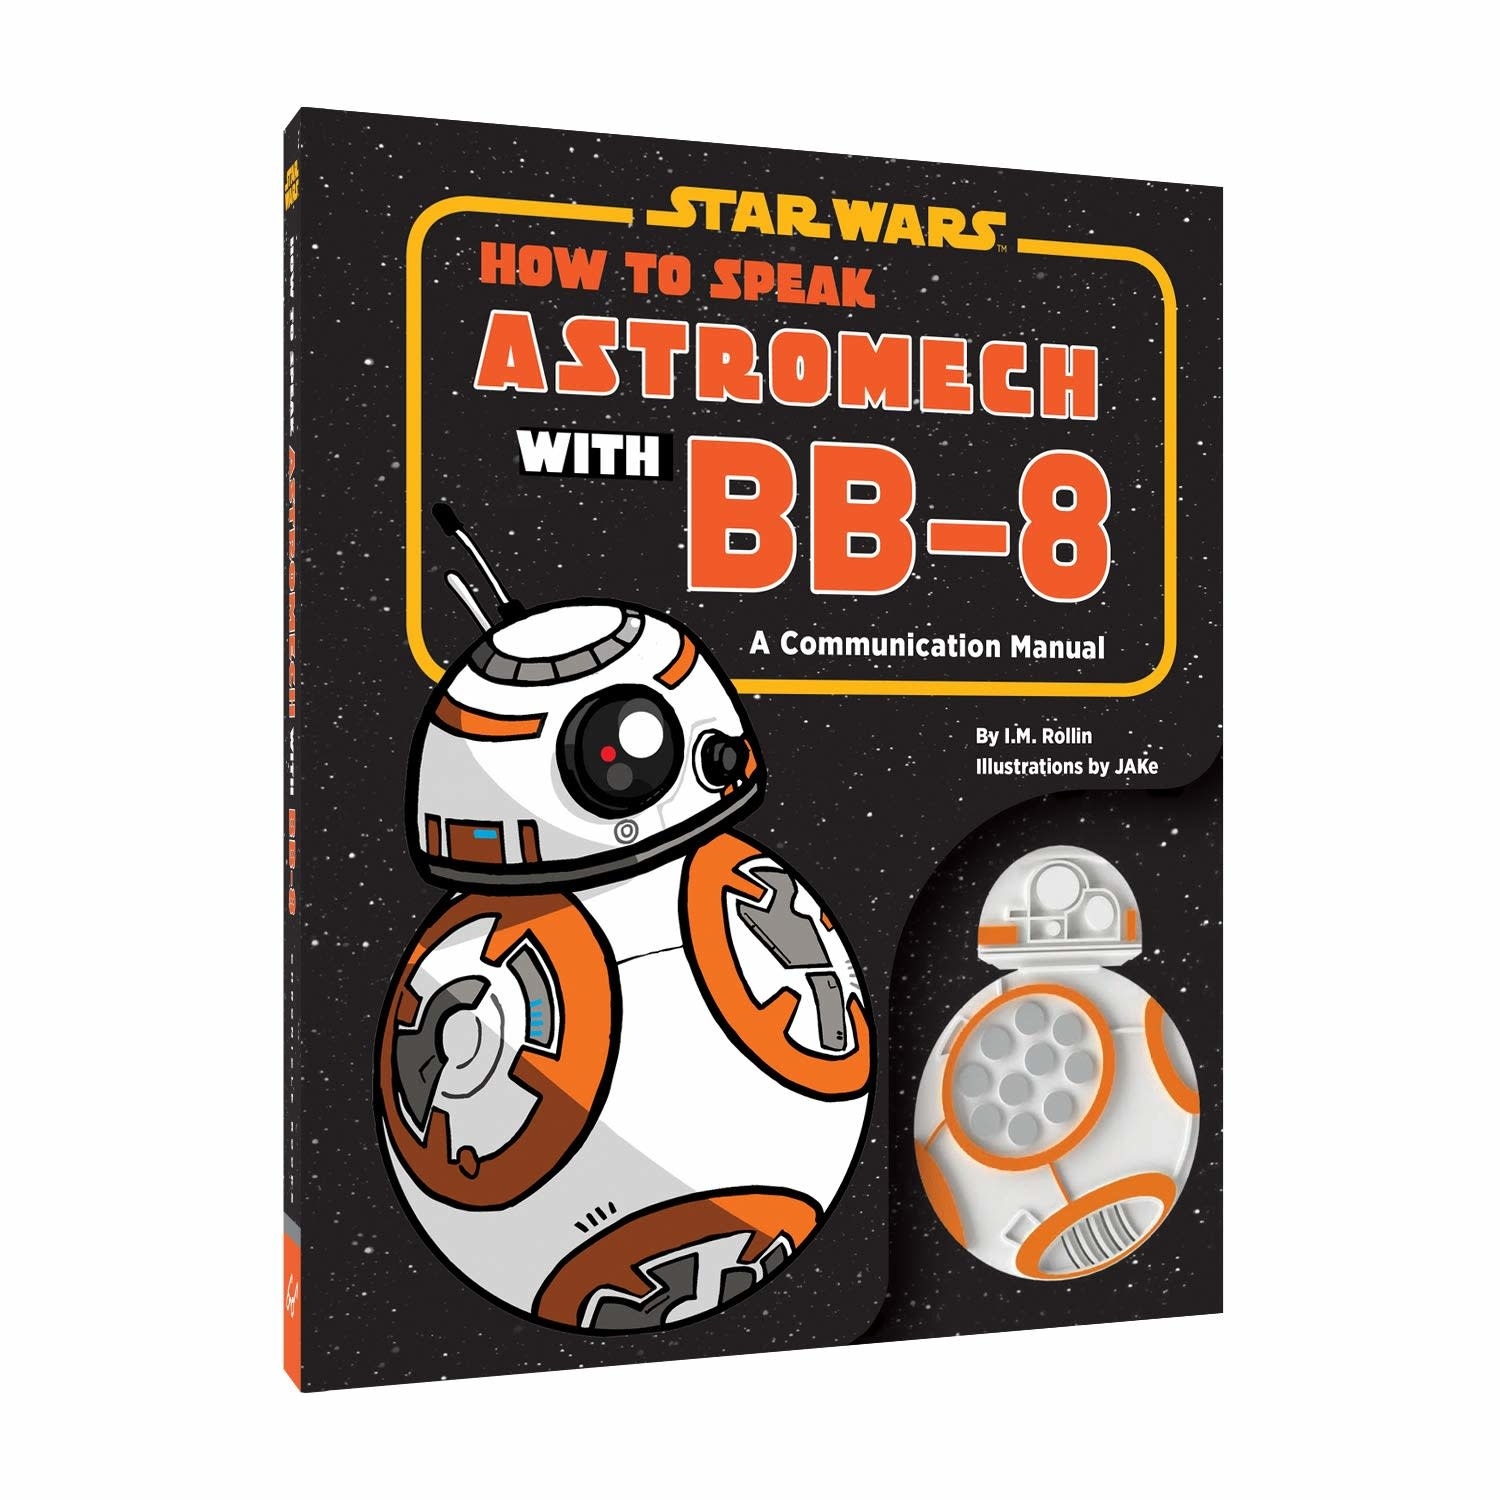 Chronicle Books Star Wars: How to Speak Astromech with BB-8